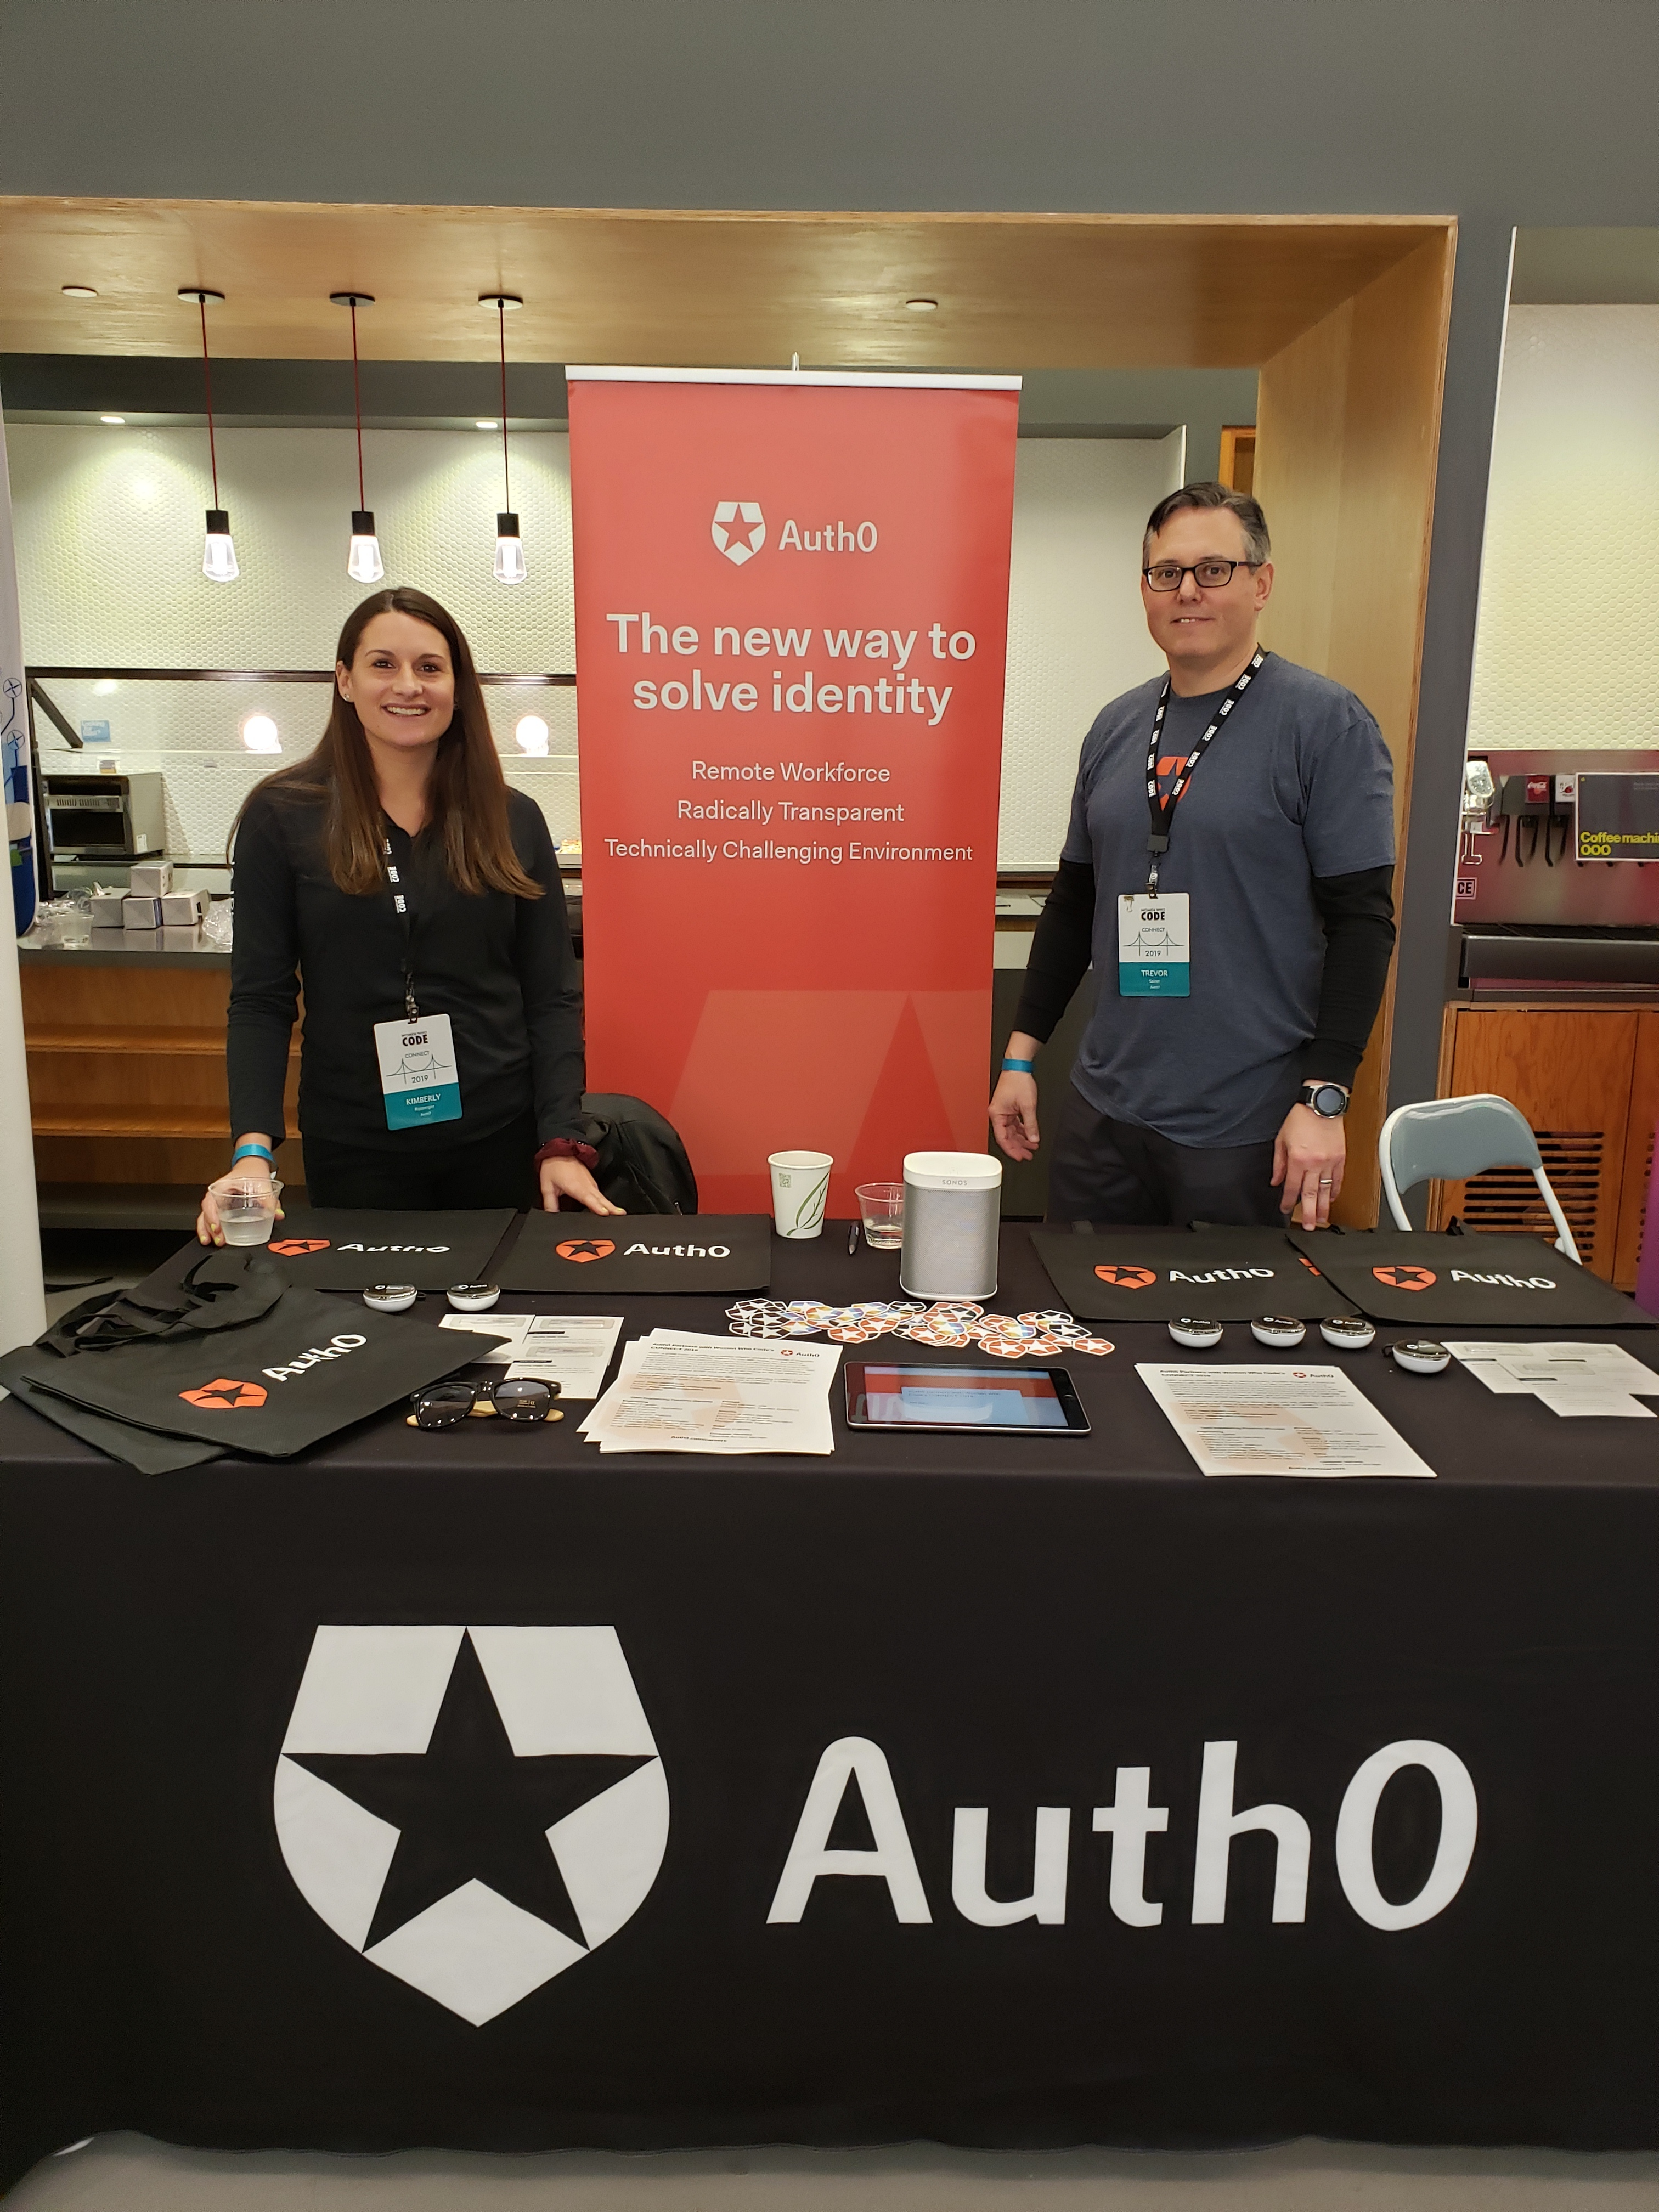 Auth0 Booth at Women Who Code CONNECT 2019